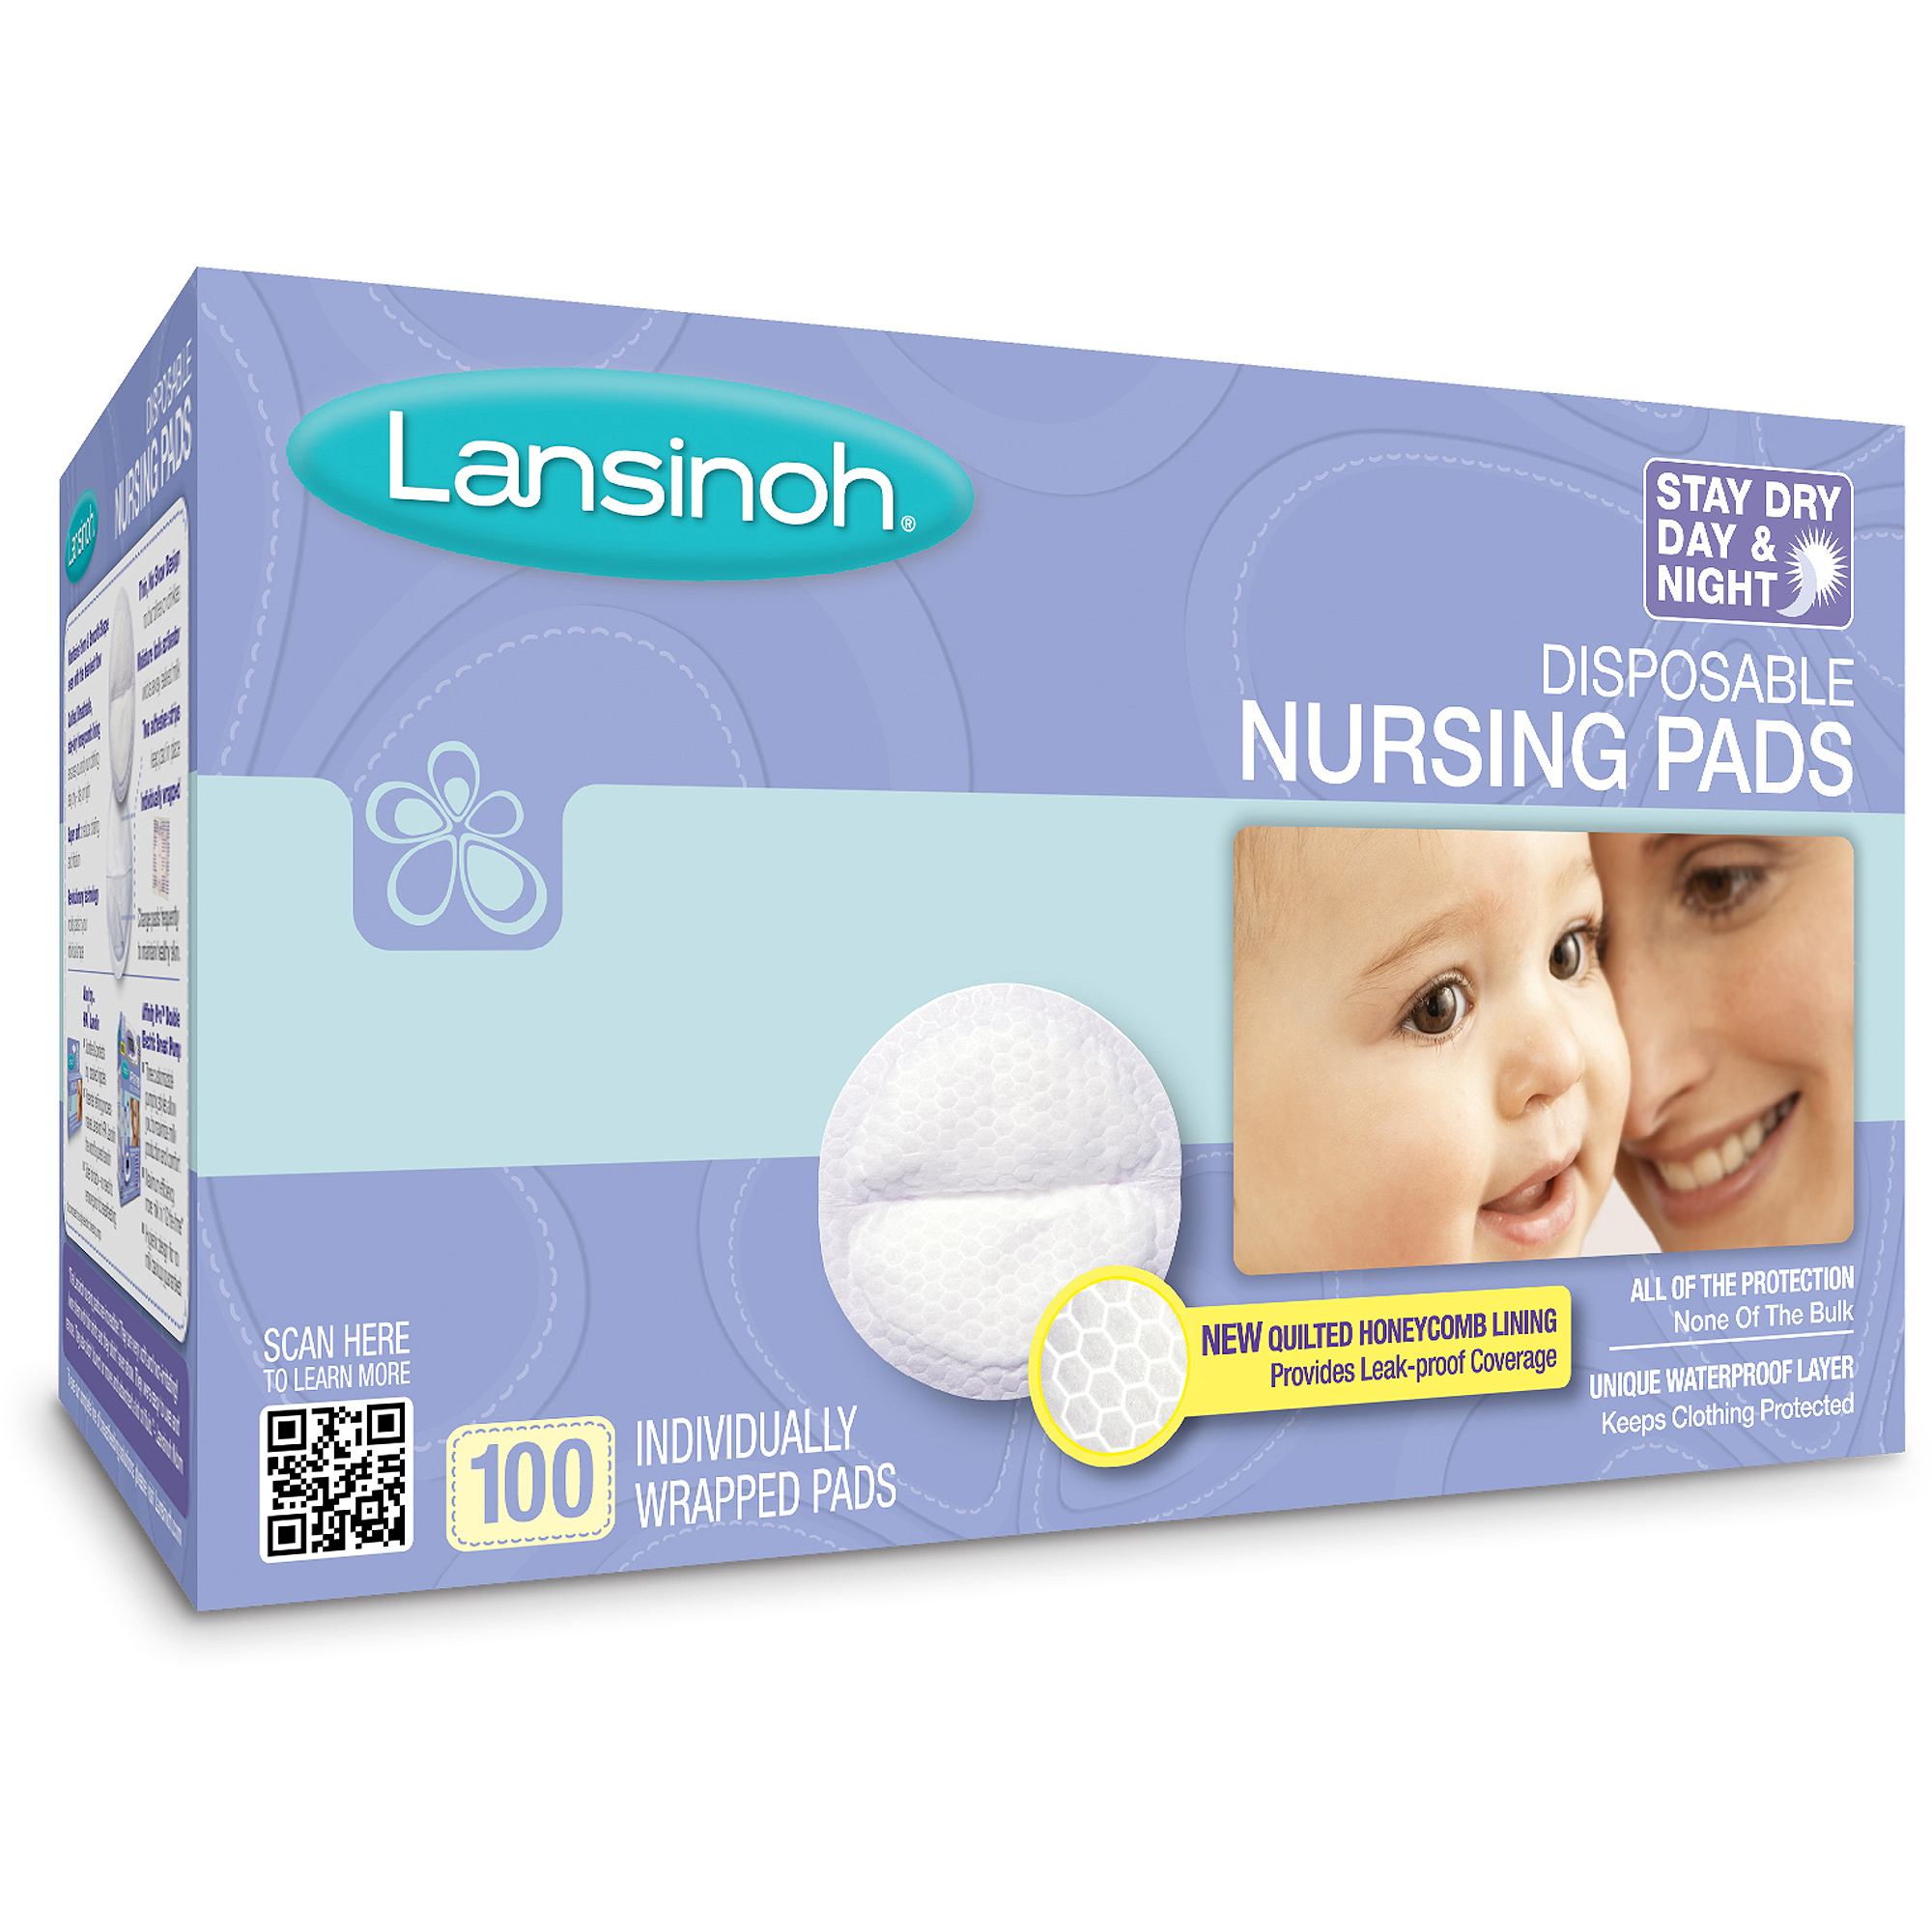 Lansinol Disposable Nursing Pads, 100 ct